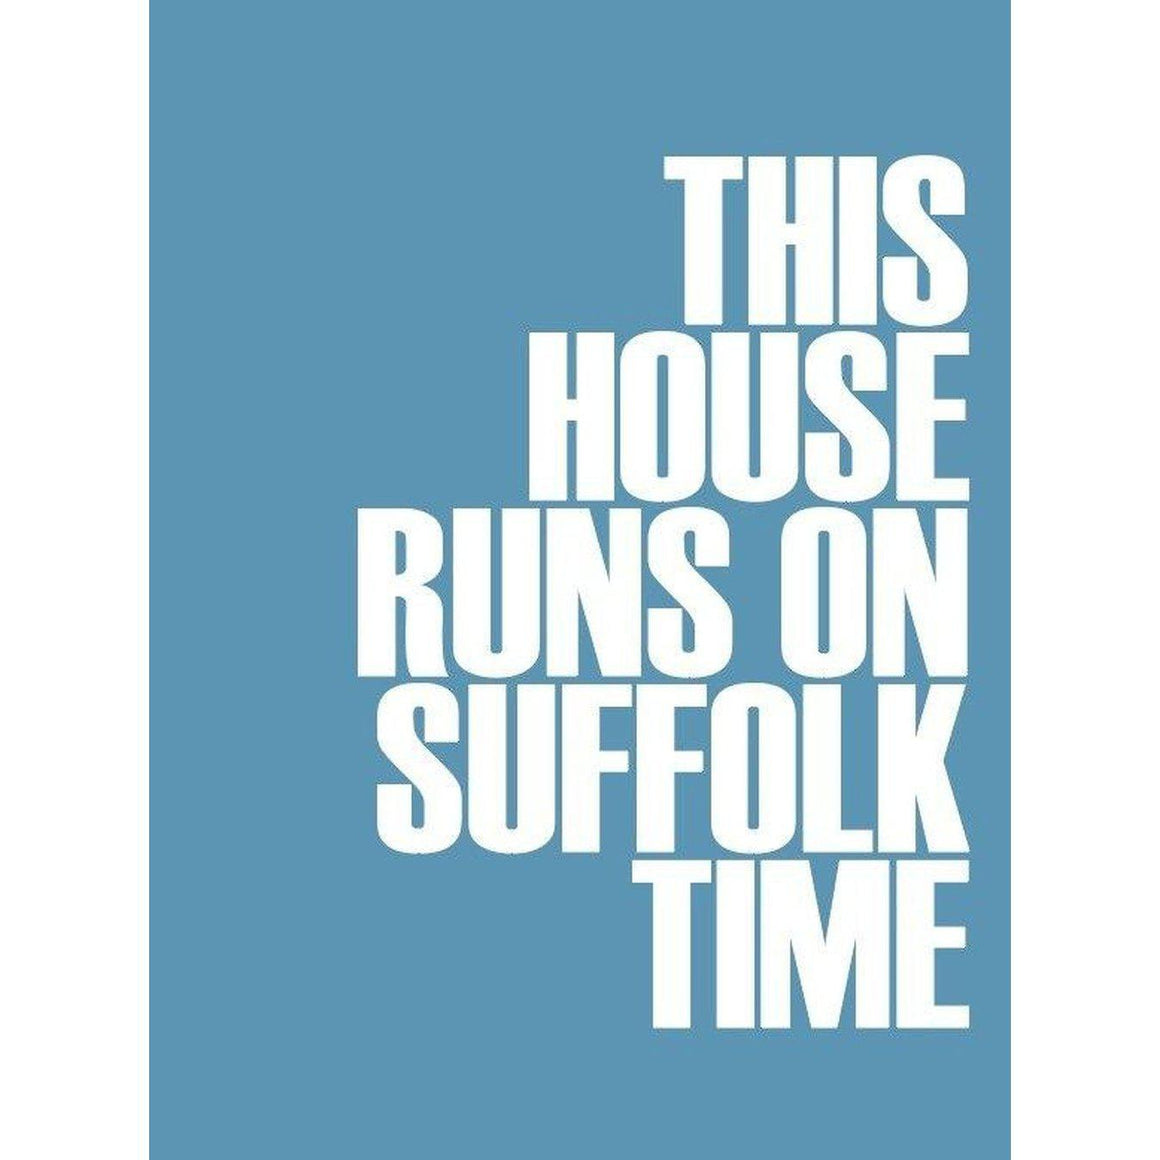 Suffolk Time Typographic Travel and Seaside Print by SeaKisses